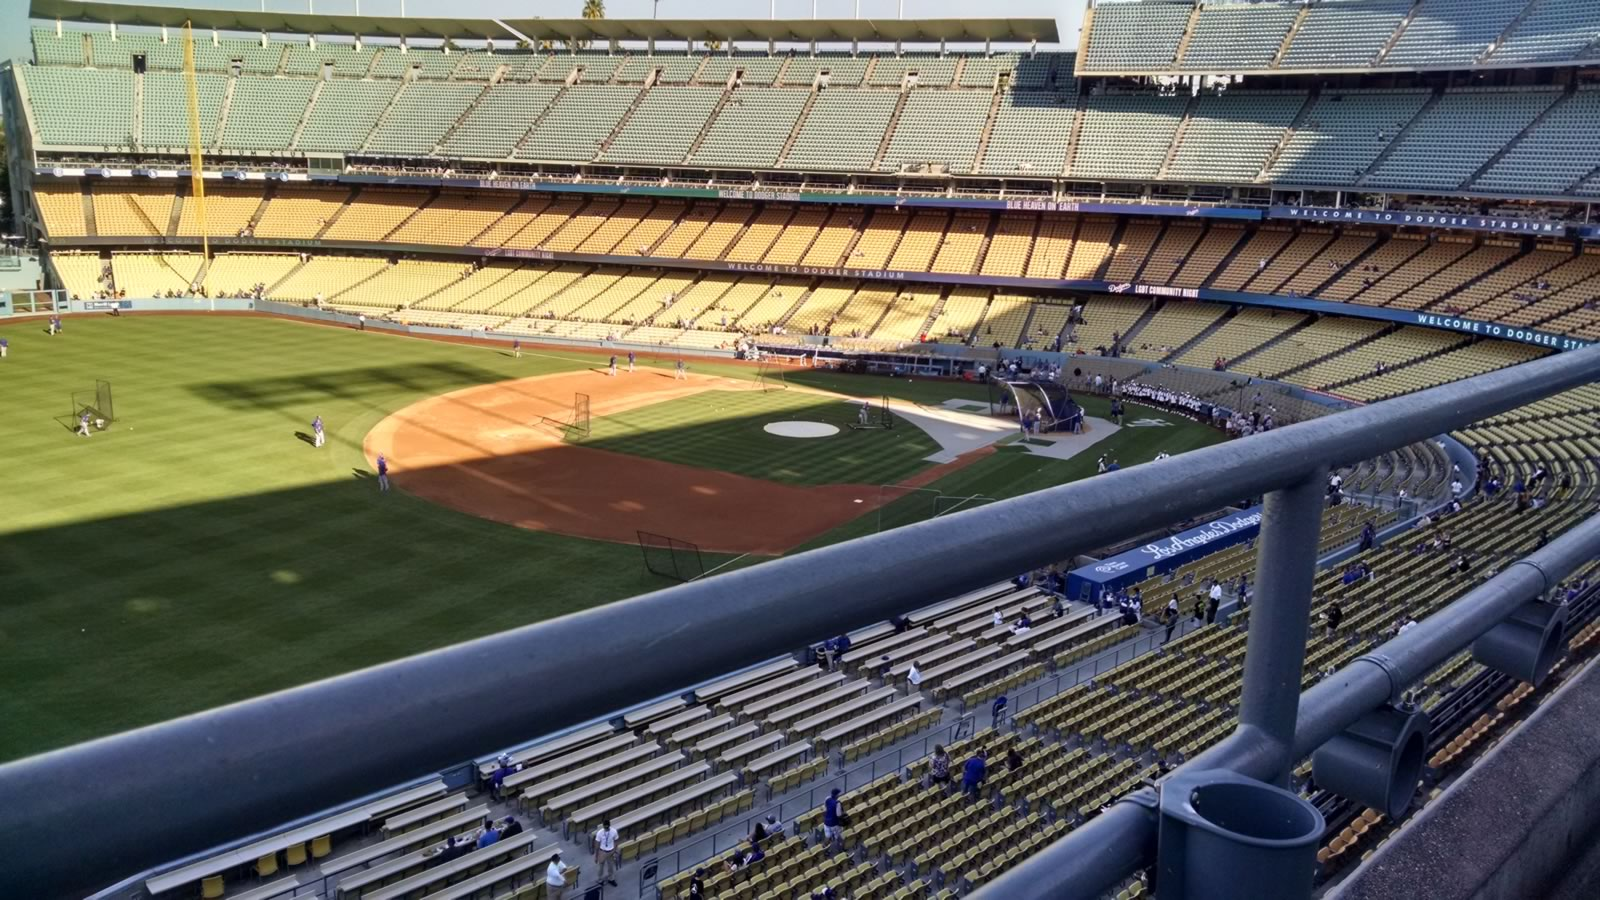 Seat View for Dodger Stadium Lower Reserve 39, Row A, Seat 6